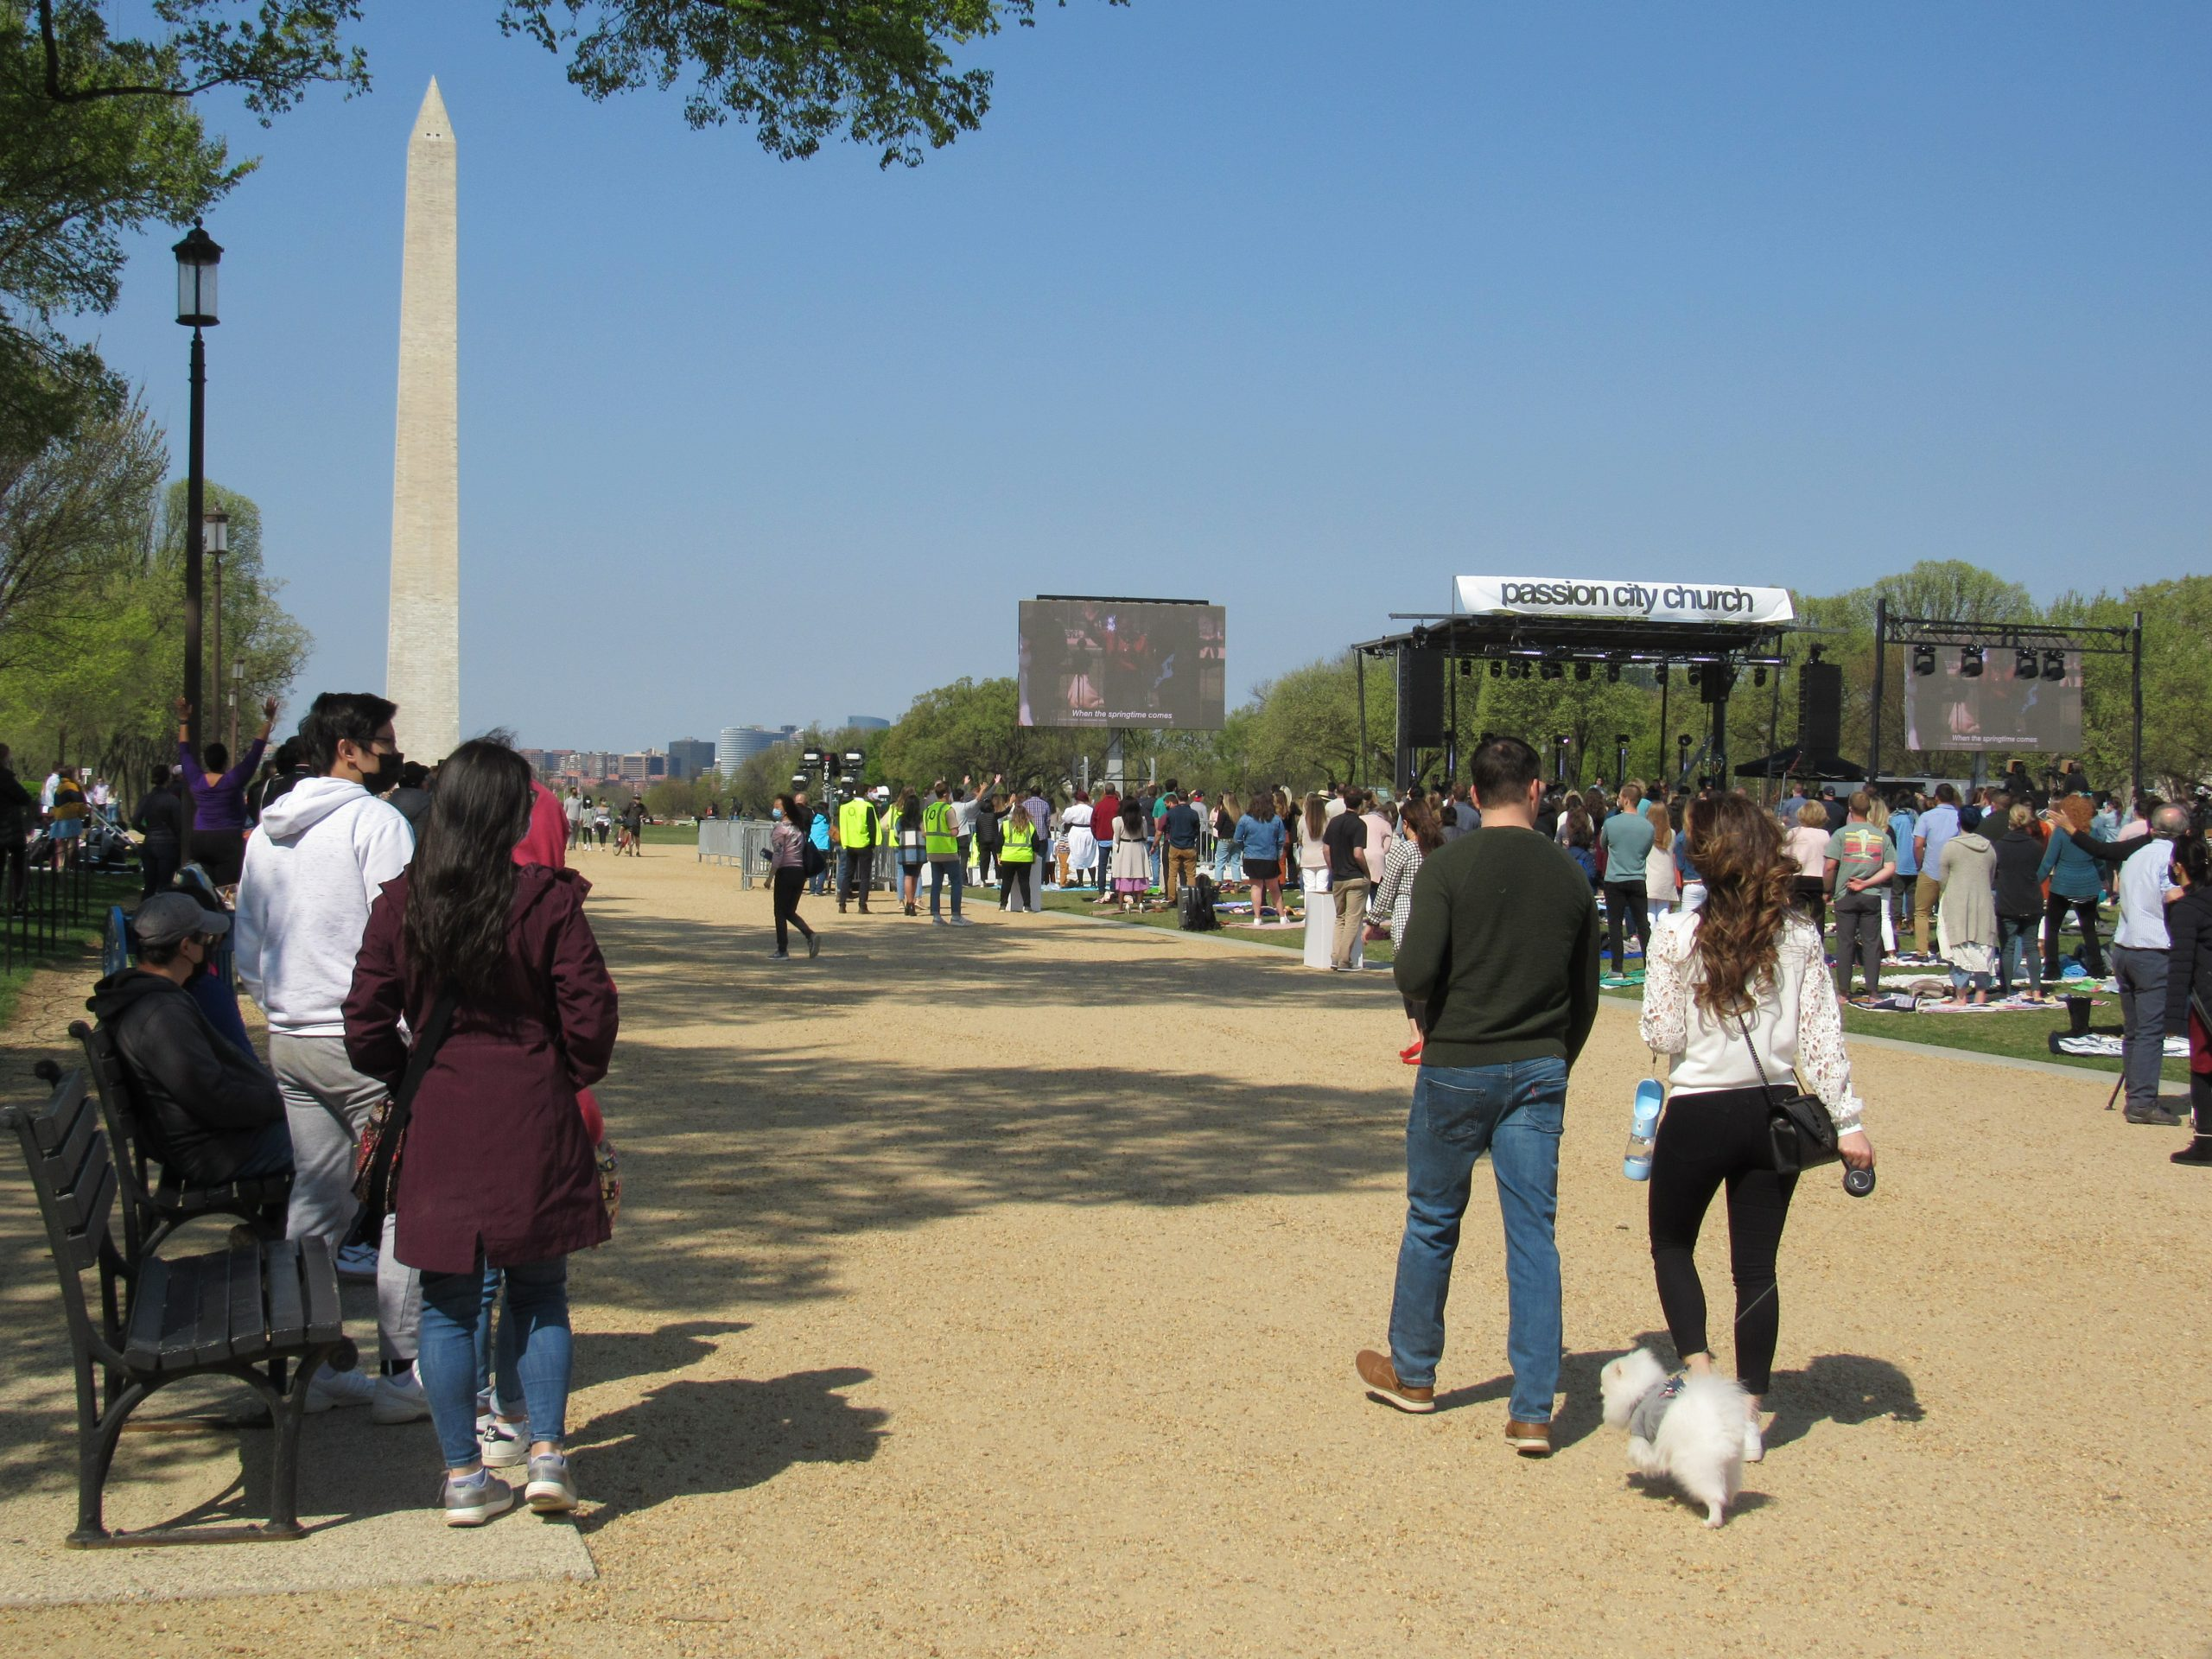 A second COVID-19 Easter Sunday in Washington: prayers for Capitol Police, calls for vaccinating continue